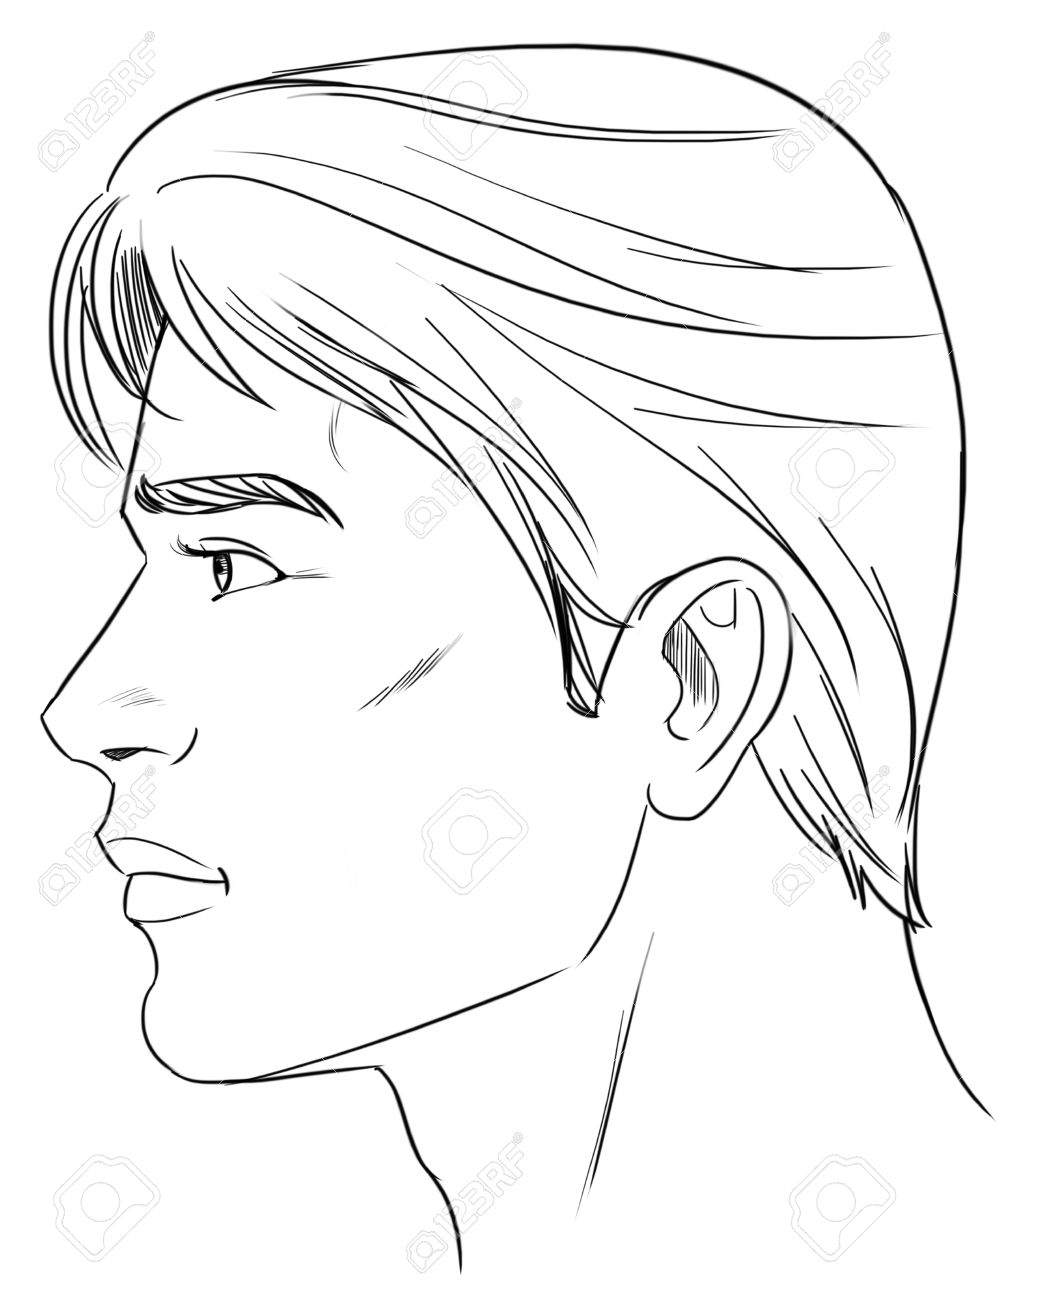 1046x1300 Outline Side Profile Of A Human Male Head Royalty Free Cliparts